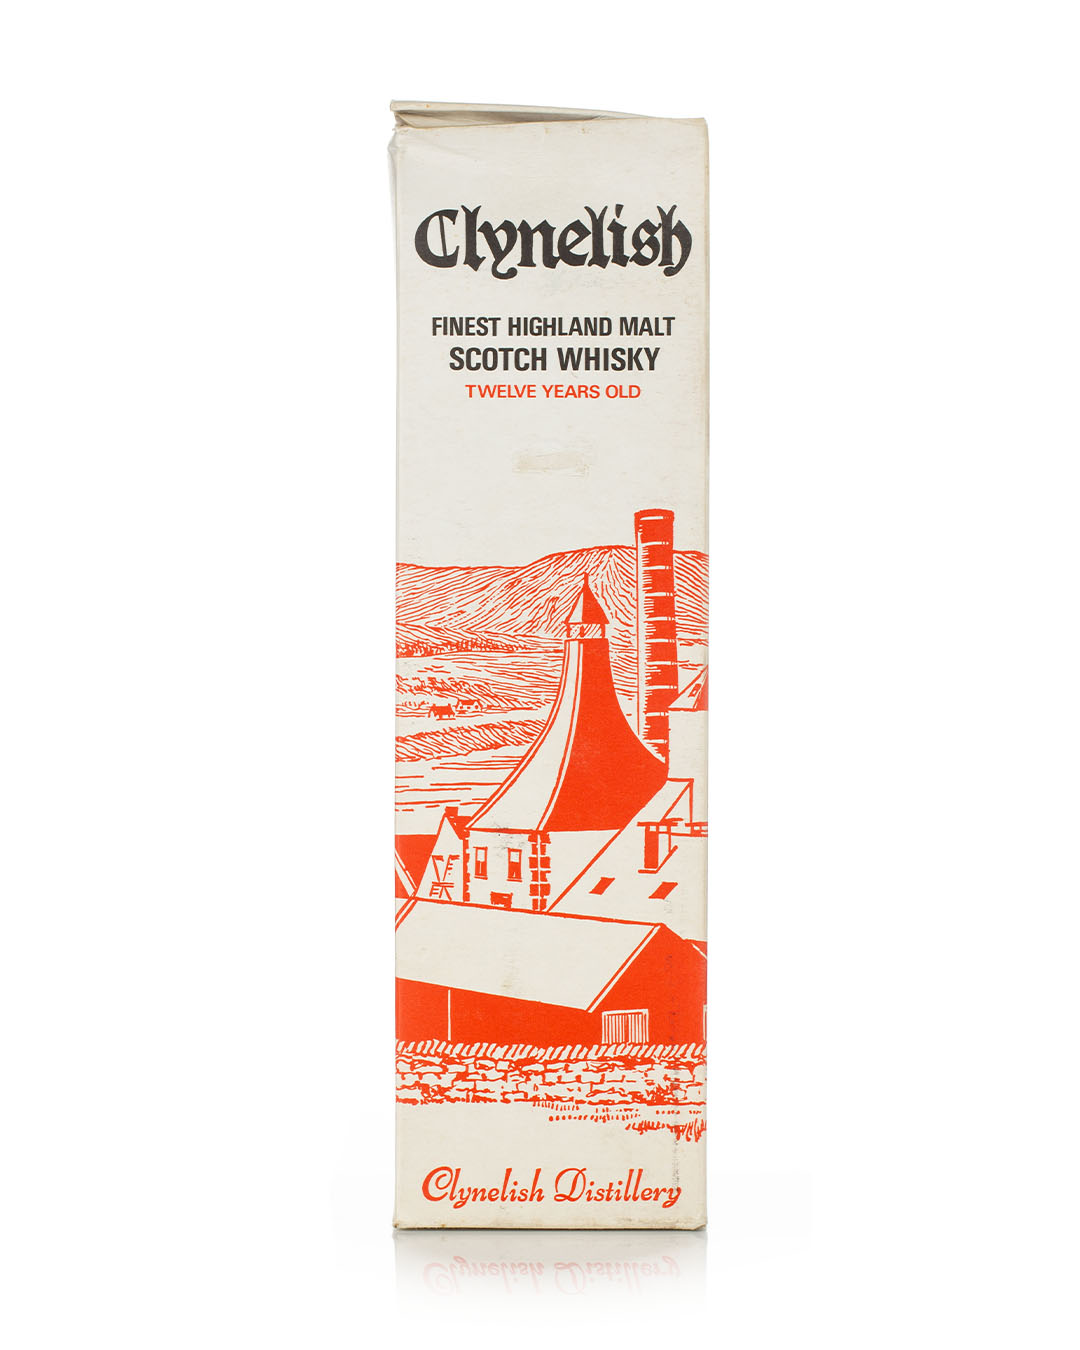 Clynelish 12 year old 70 proof Ainslie & Heilbrown box front